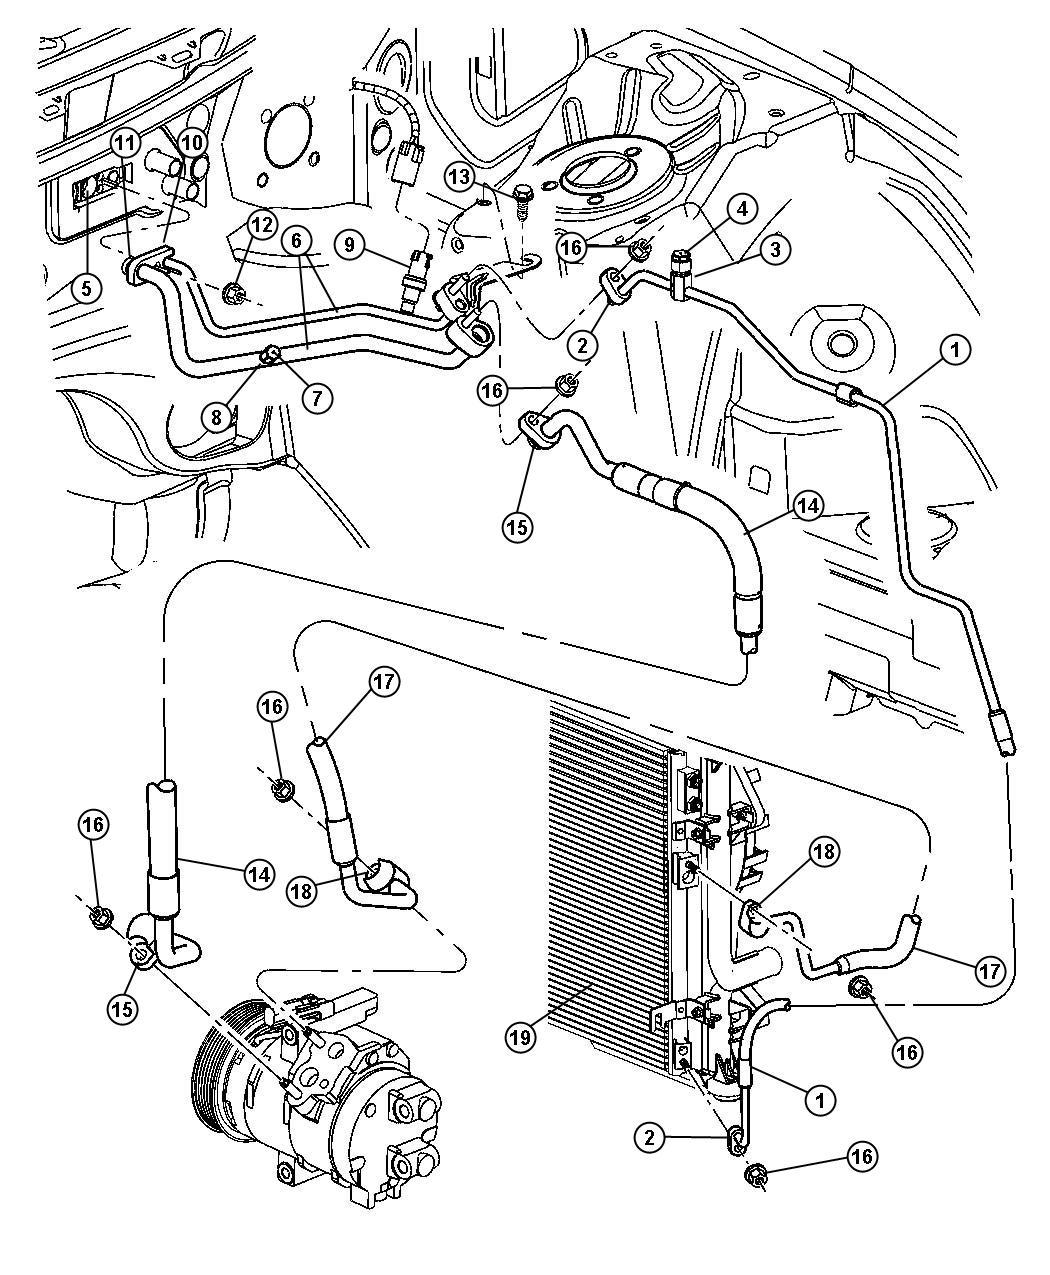 Chrysler 300 Parts Diagram. Chrysler. Auto Wiring Diagram